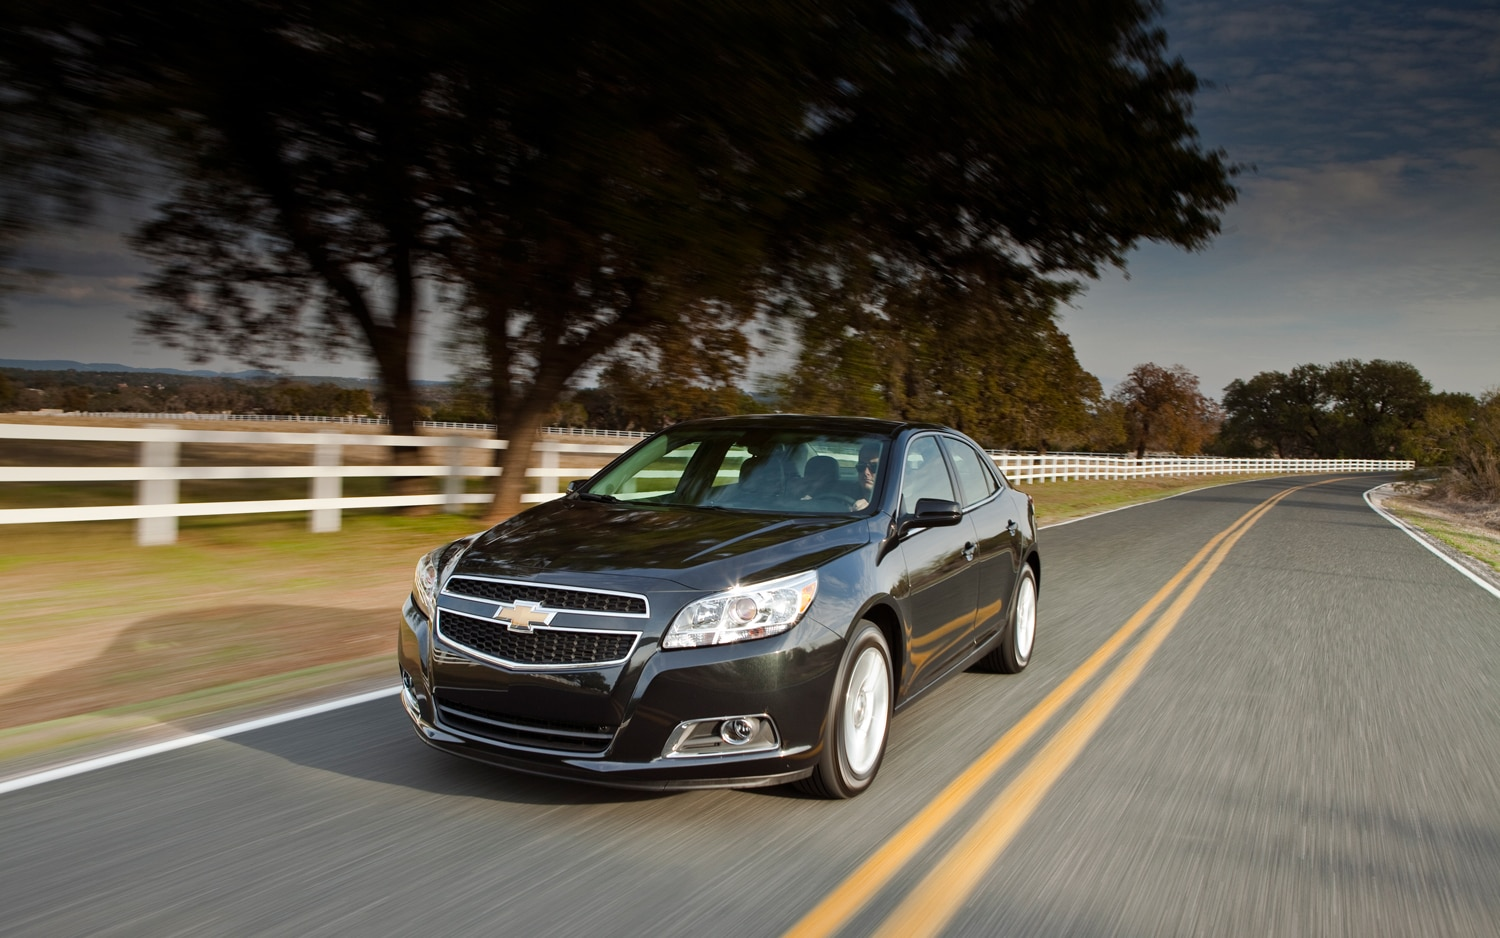 2013 Chevrolet Malibu Eco Front Left View1